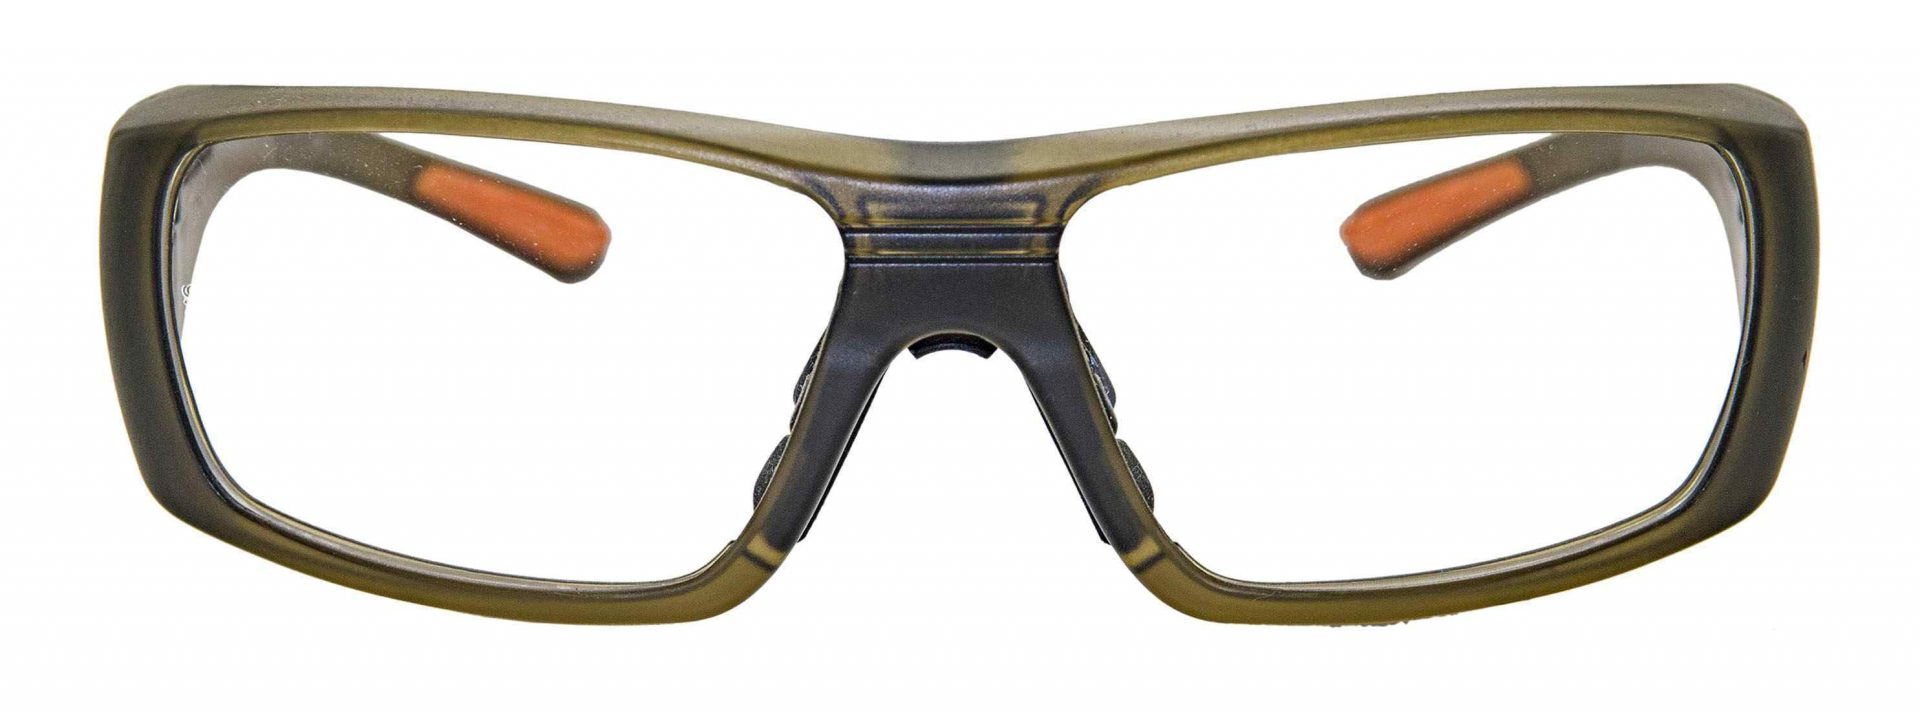 WorkSafe spectacles: Safety Glasses Kuiper 01 2970x1100